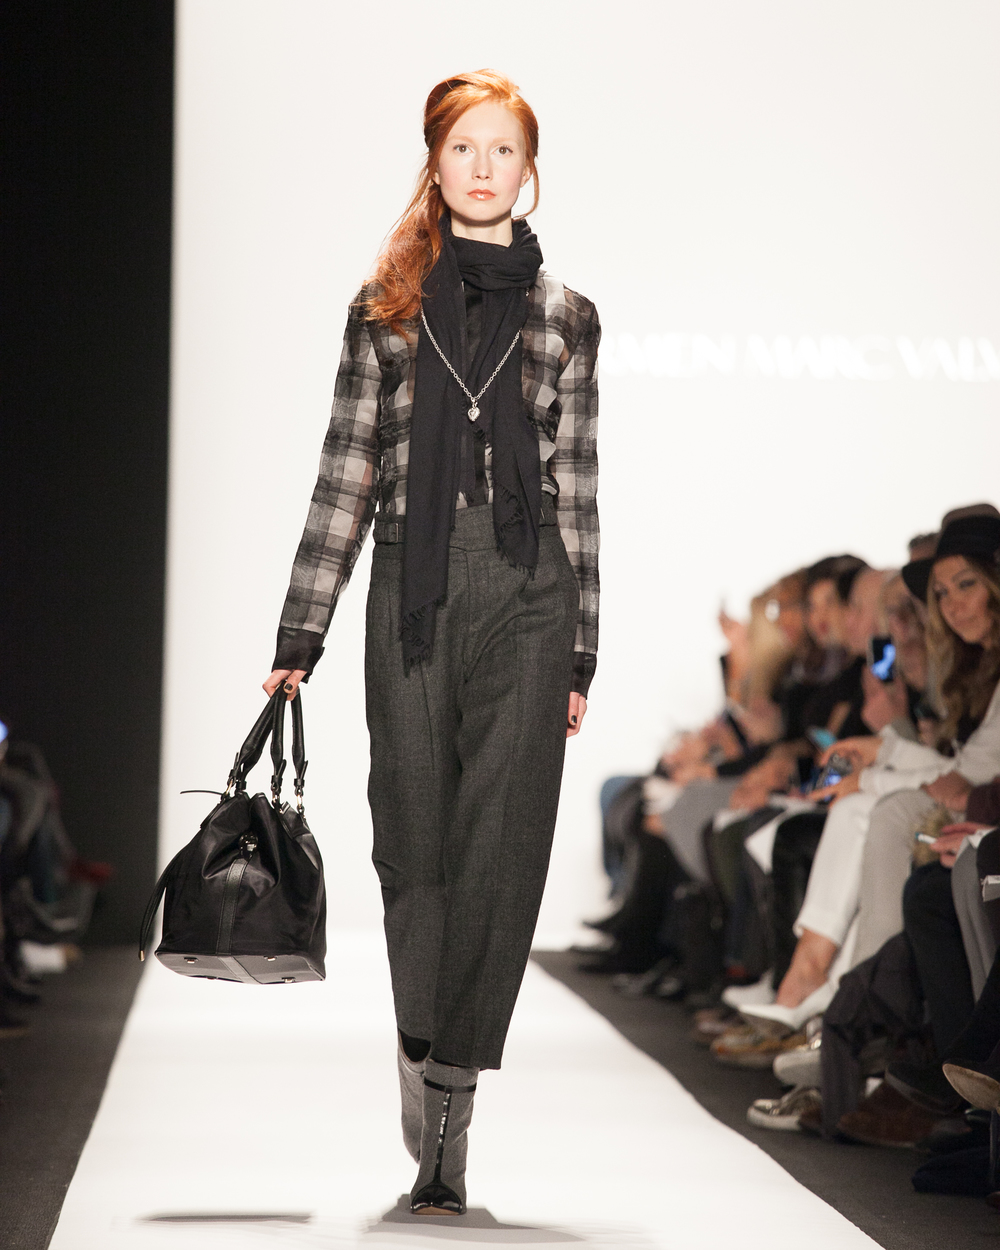 013-Marc-Carmen-Valvo-new-york-fashion-week-fall-winter-2015--Shana-Schnur-Photography-013.jpg